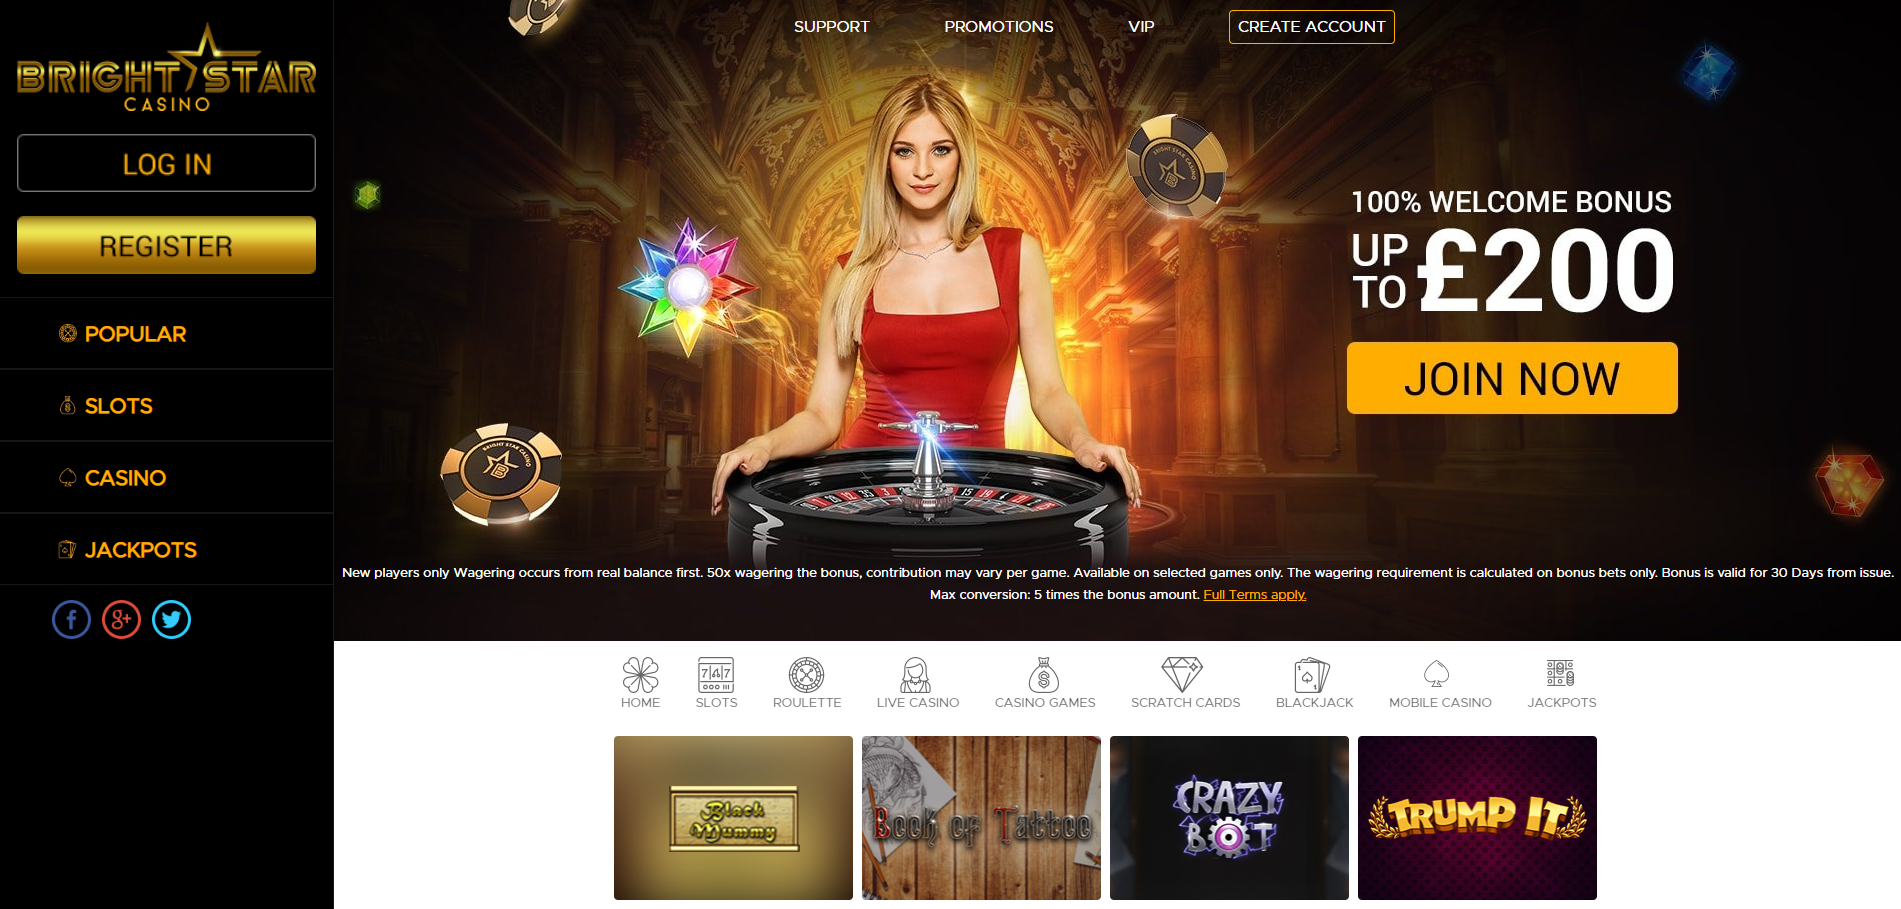 Bright Star Casino Home Page